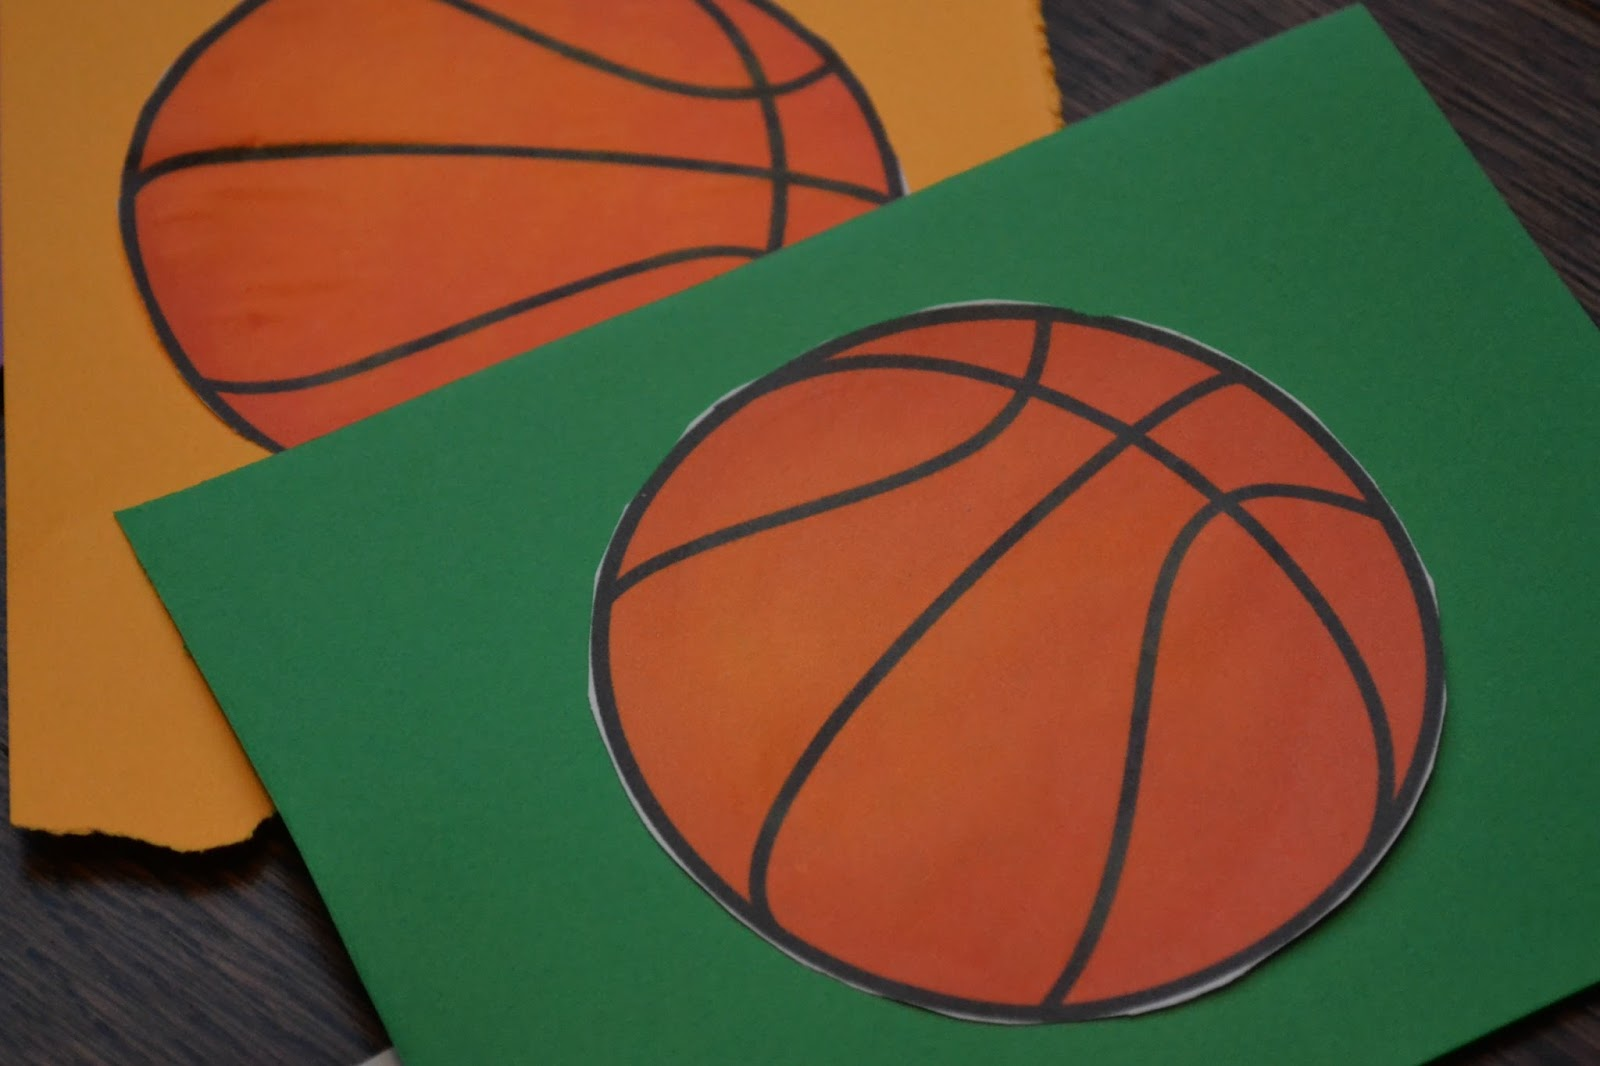 essay on basketball game for kids 33 basketball terms every kid should know 11 fun basketball games for kids besides h-o-r-s-e rim height and ball size: a guide for young basketball players.